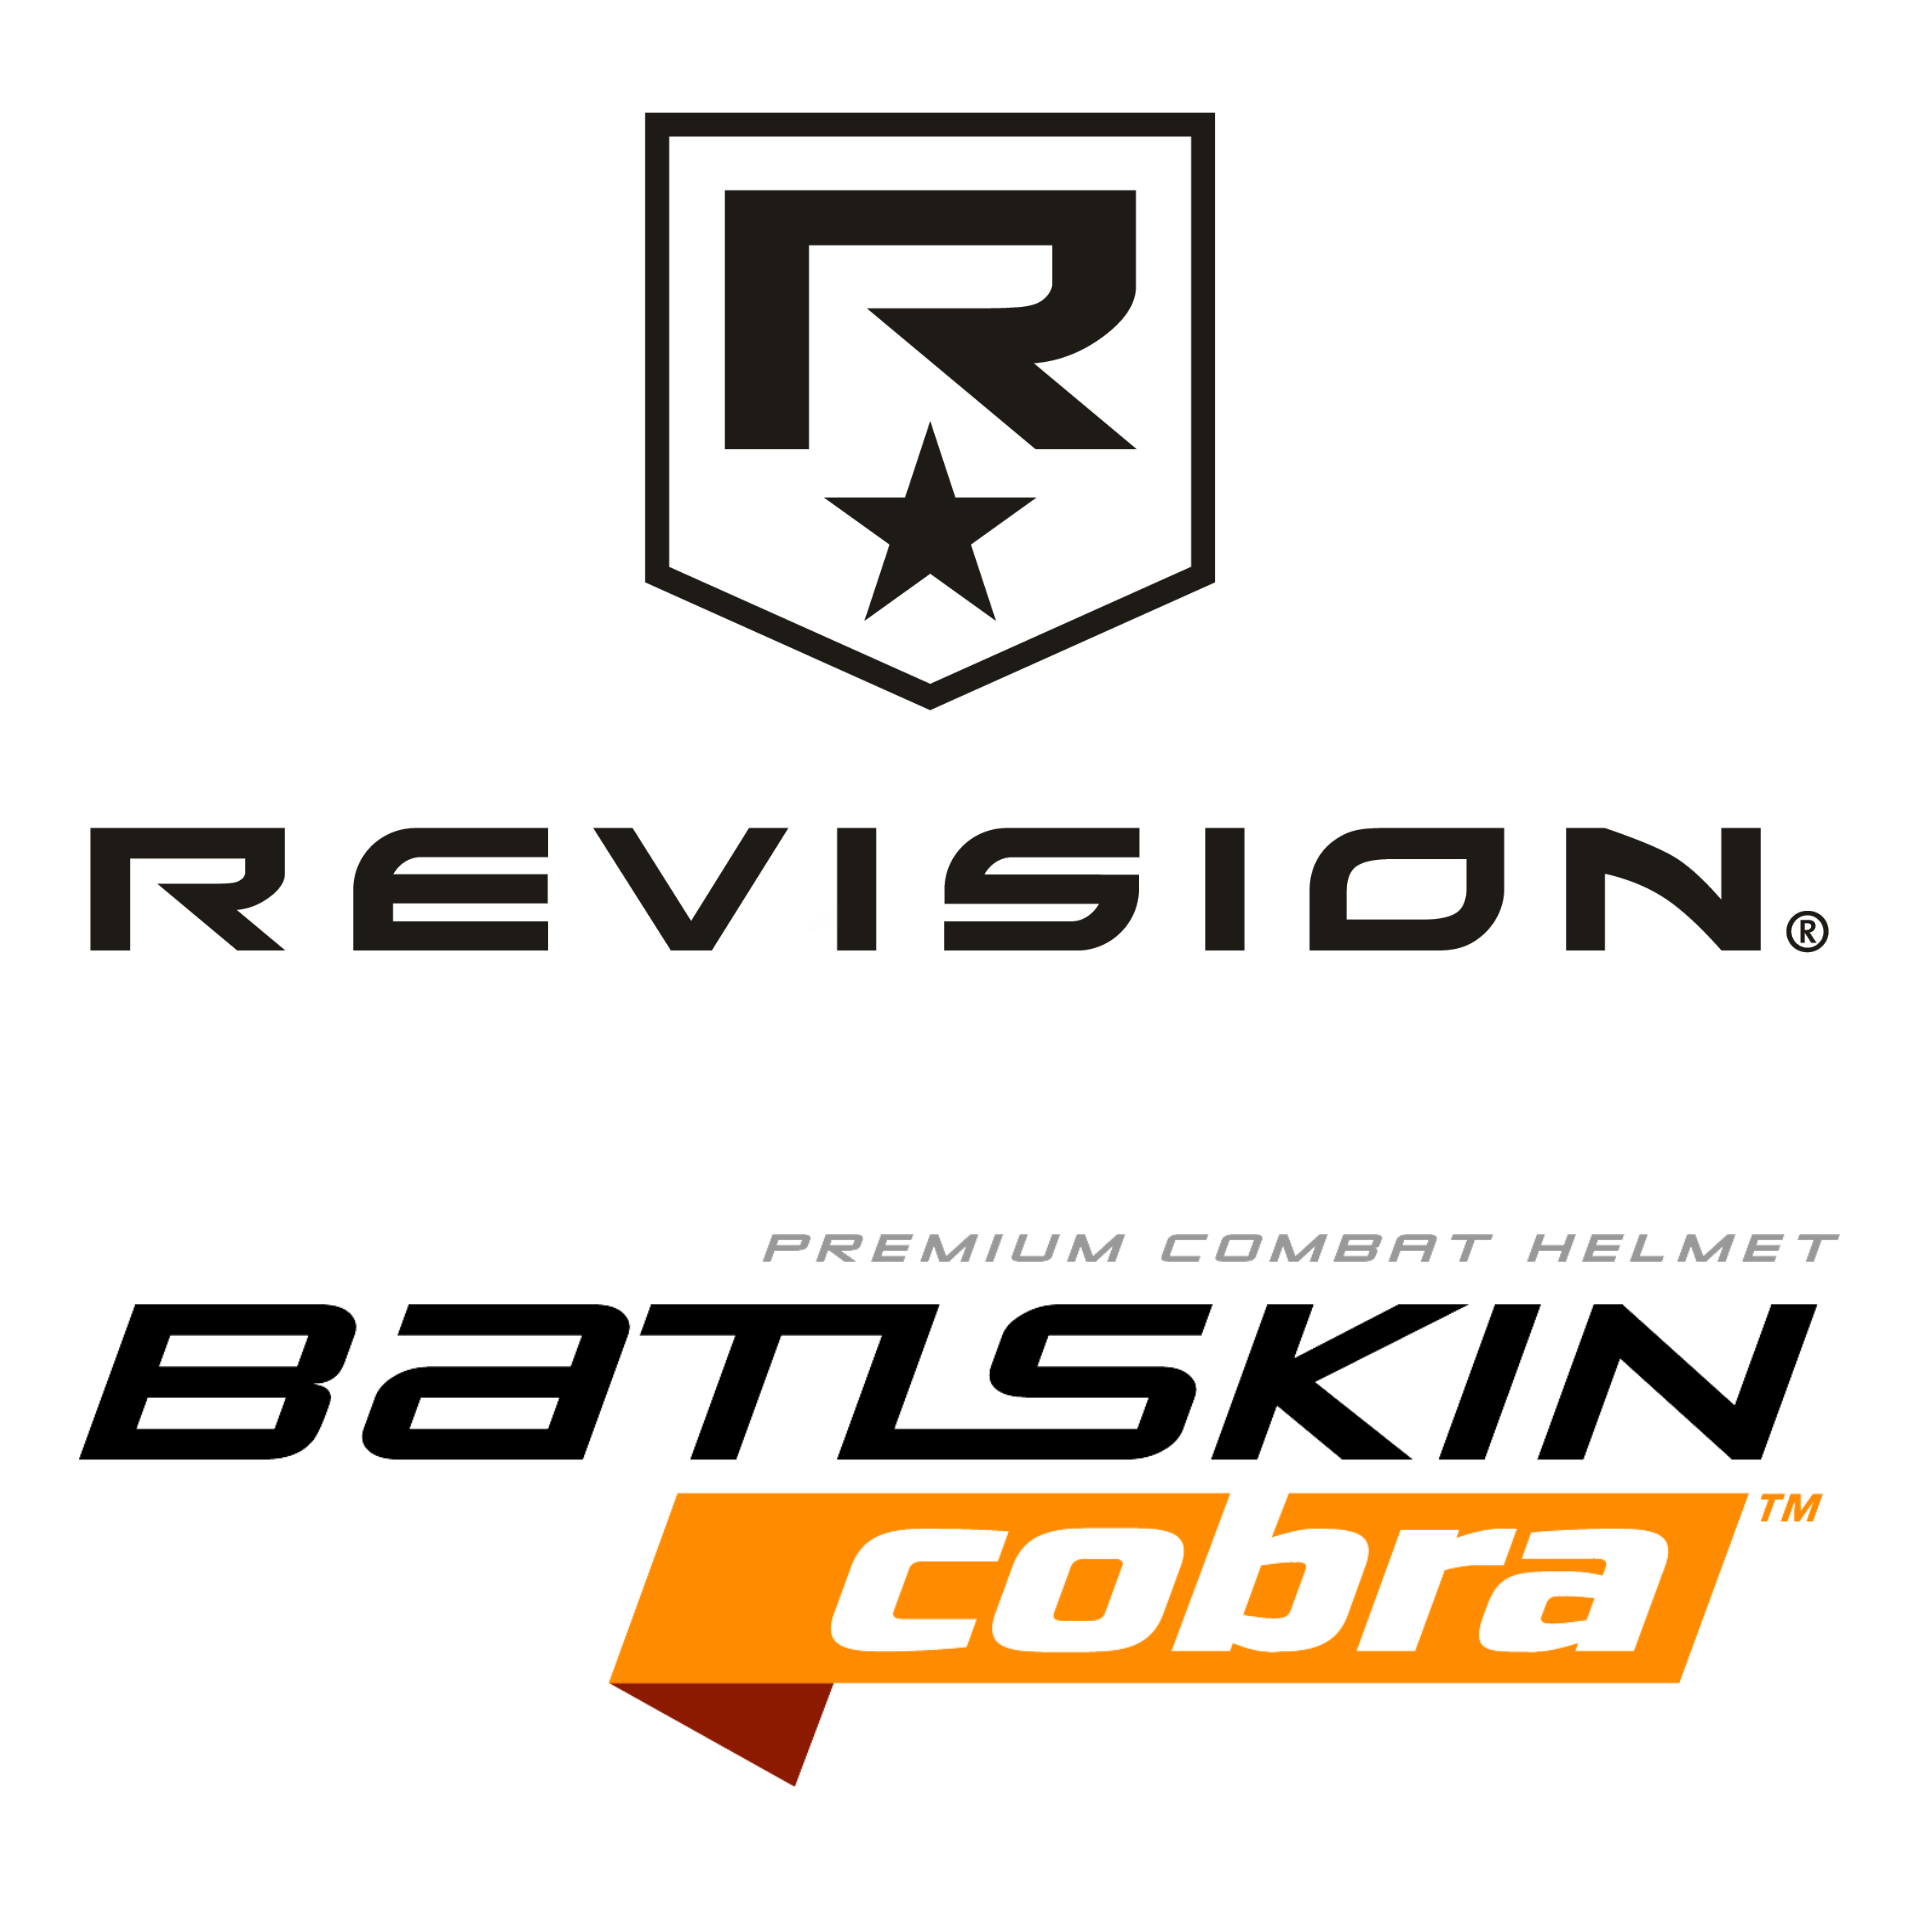 REVISION-Cobra-BATLSKIN-Logo (Transparent)